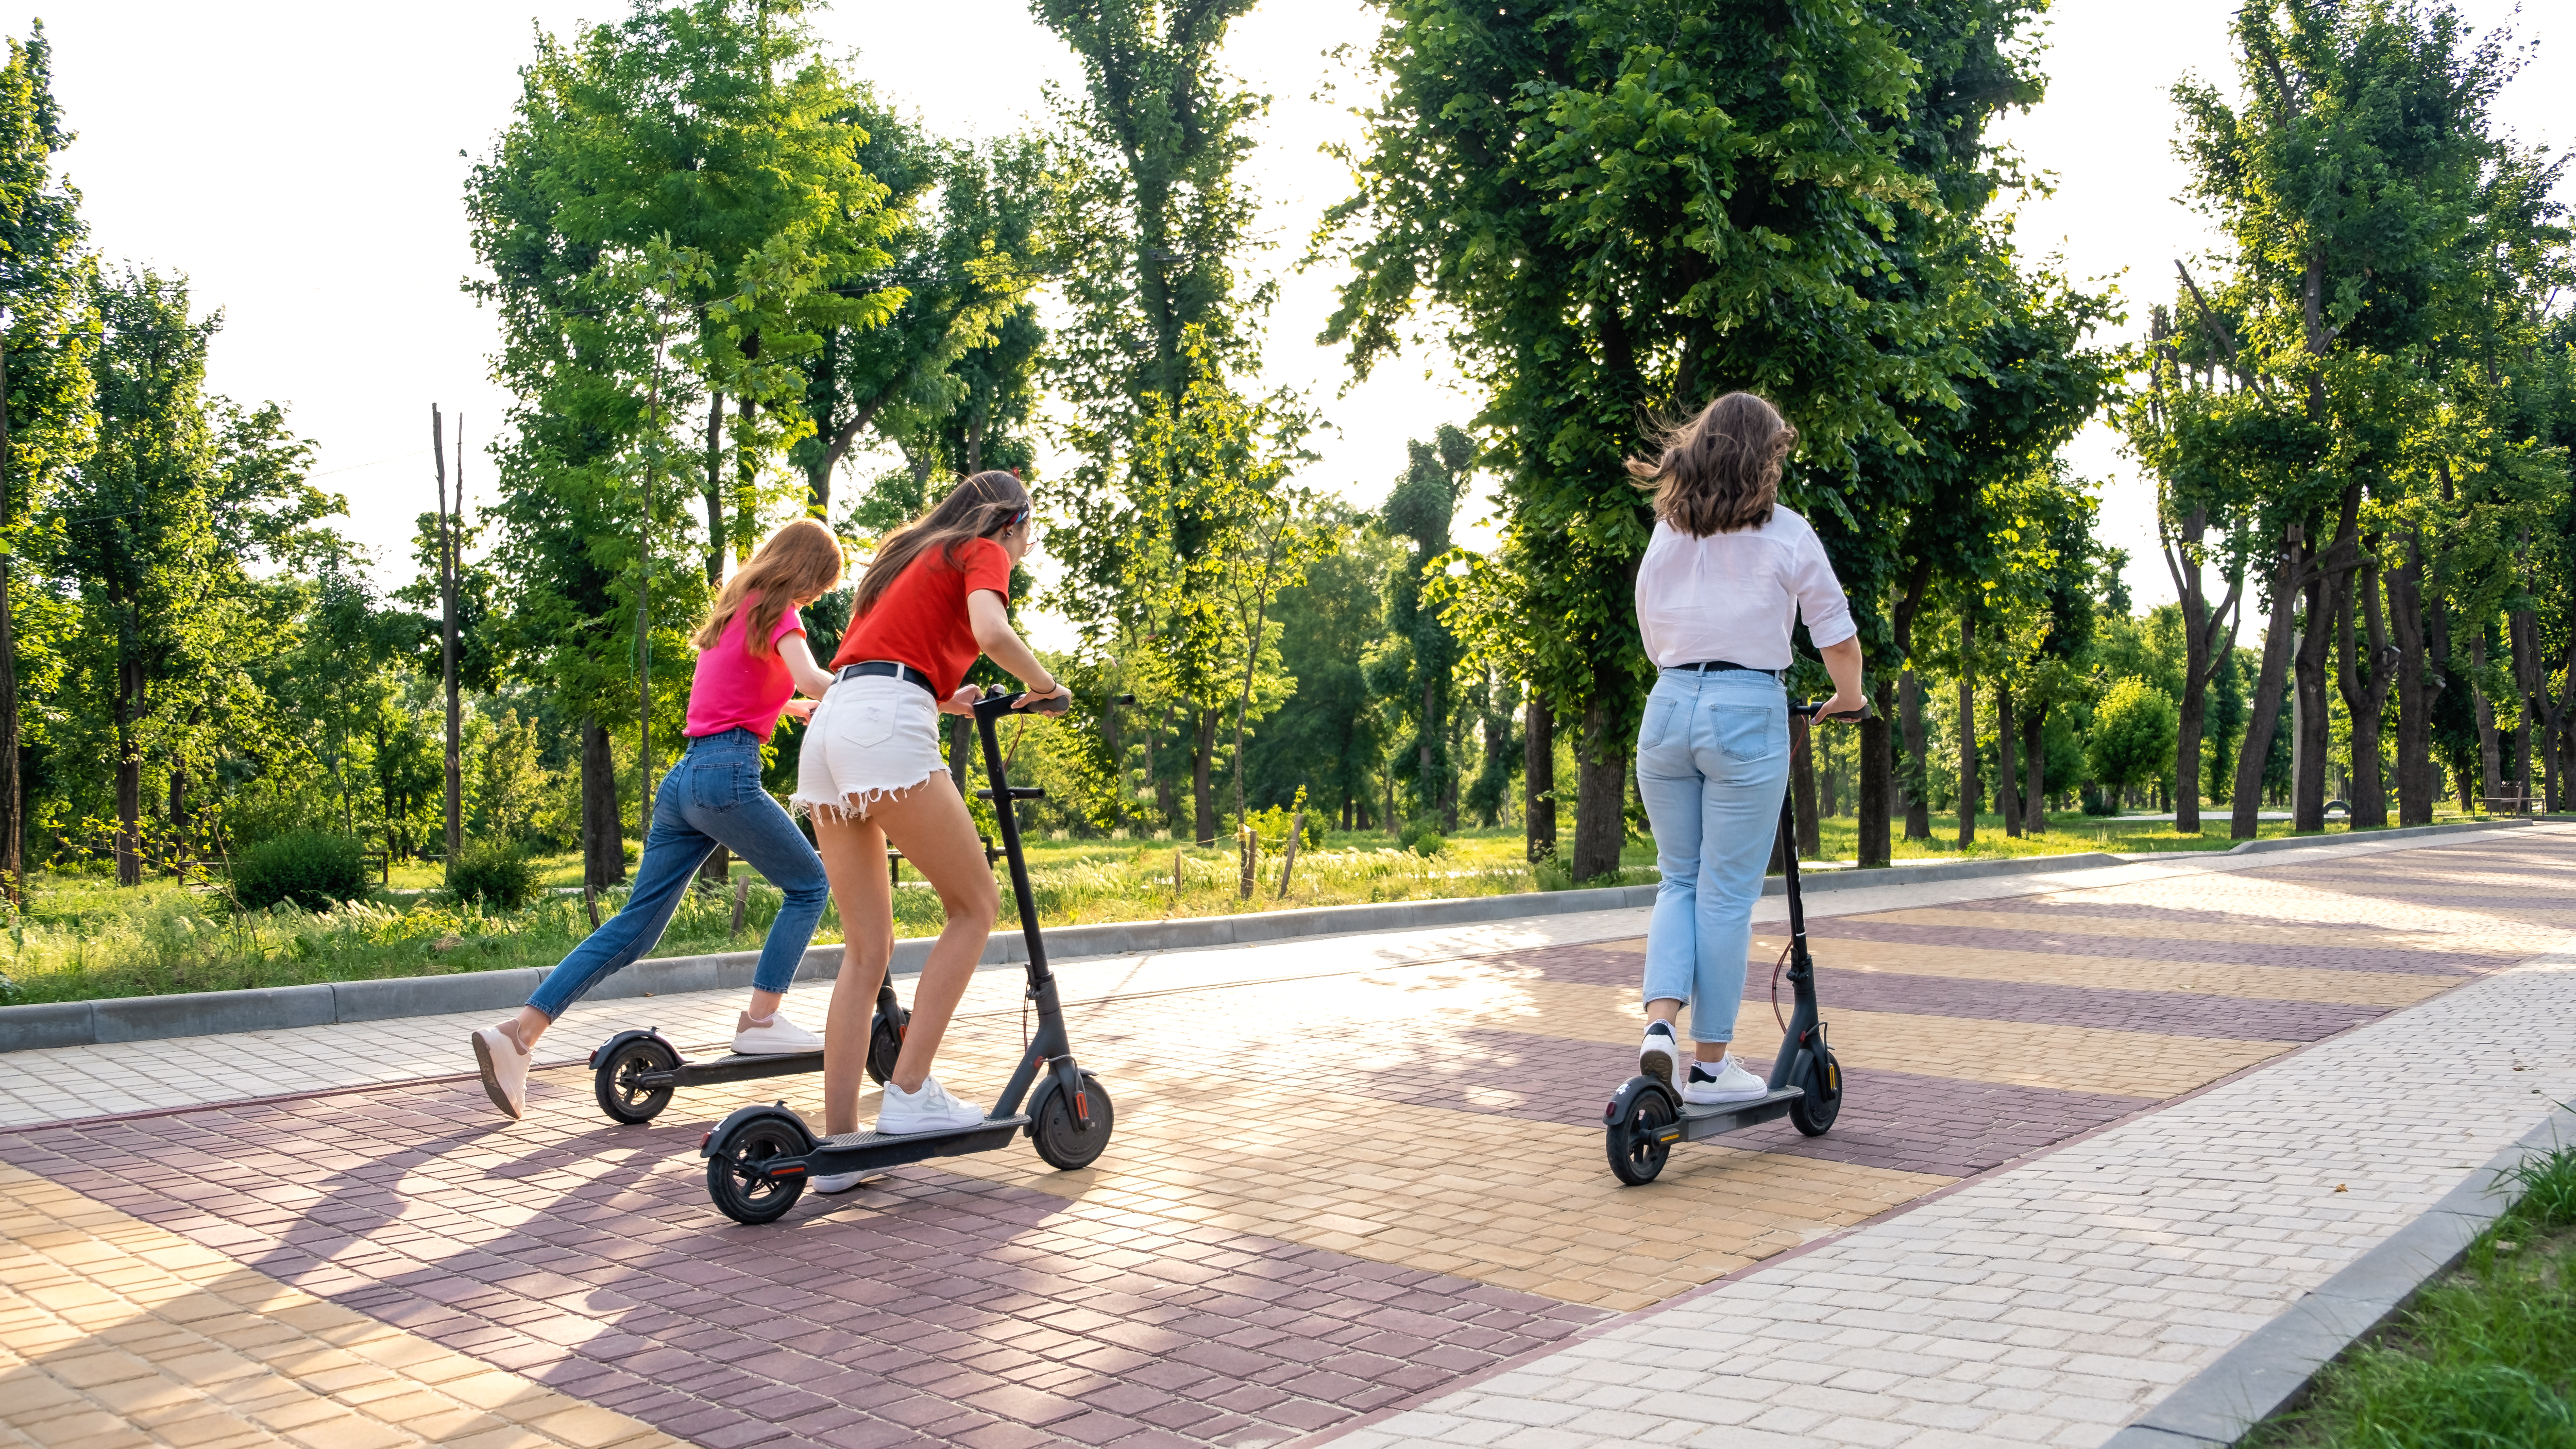 e-scooter-electric-scooter-ecological-urban-city-t-DP5GLAU.jpg